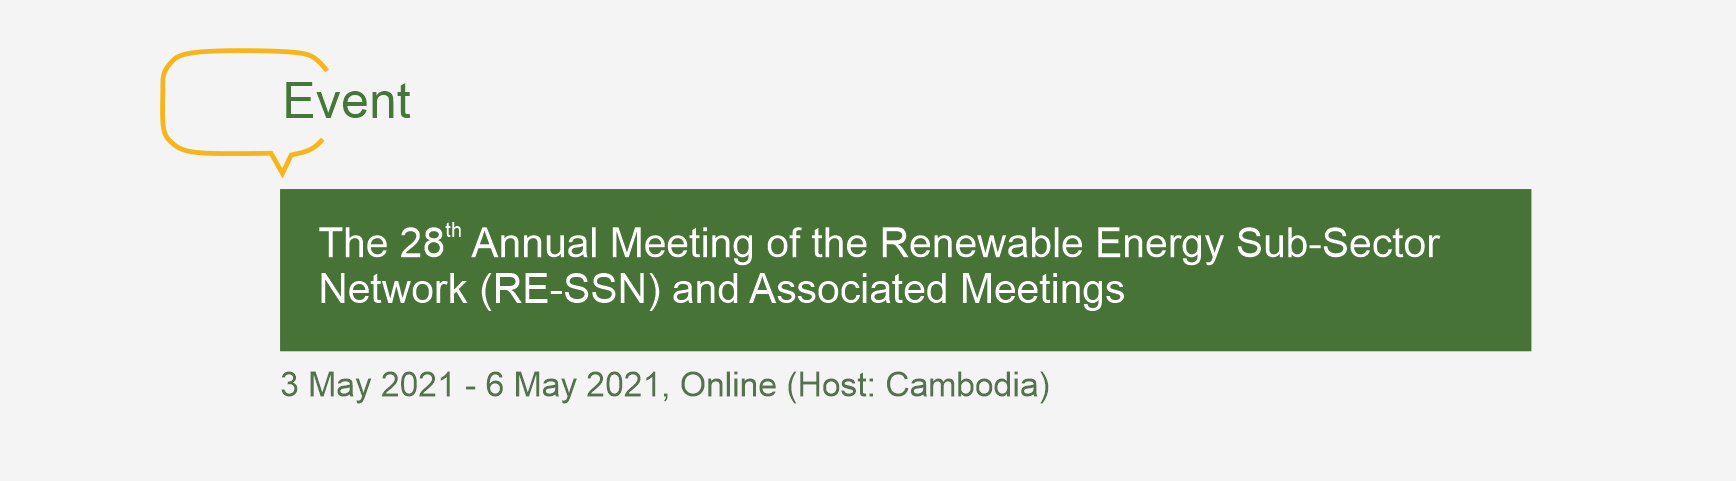 The 28th Annual Meeting of the Renewable Energy Sub-Sector Network (RE-SSN) and Associated Meetings